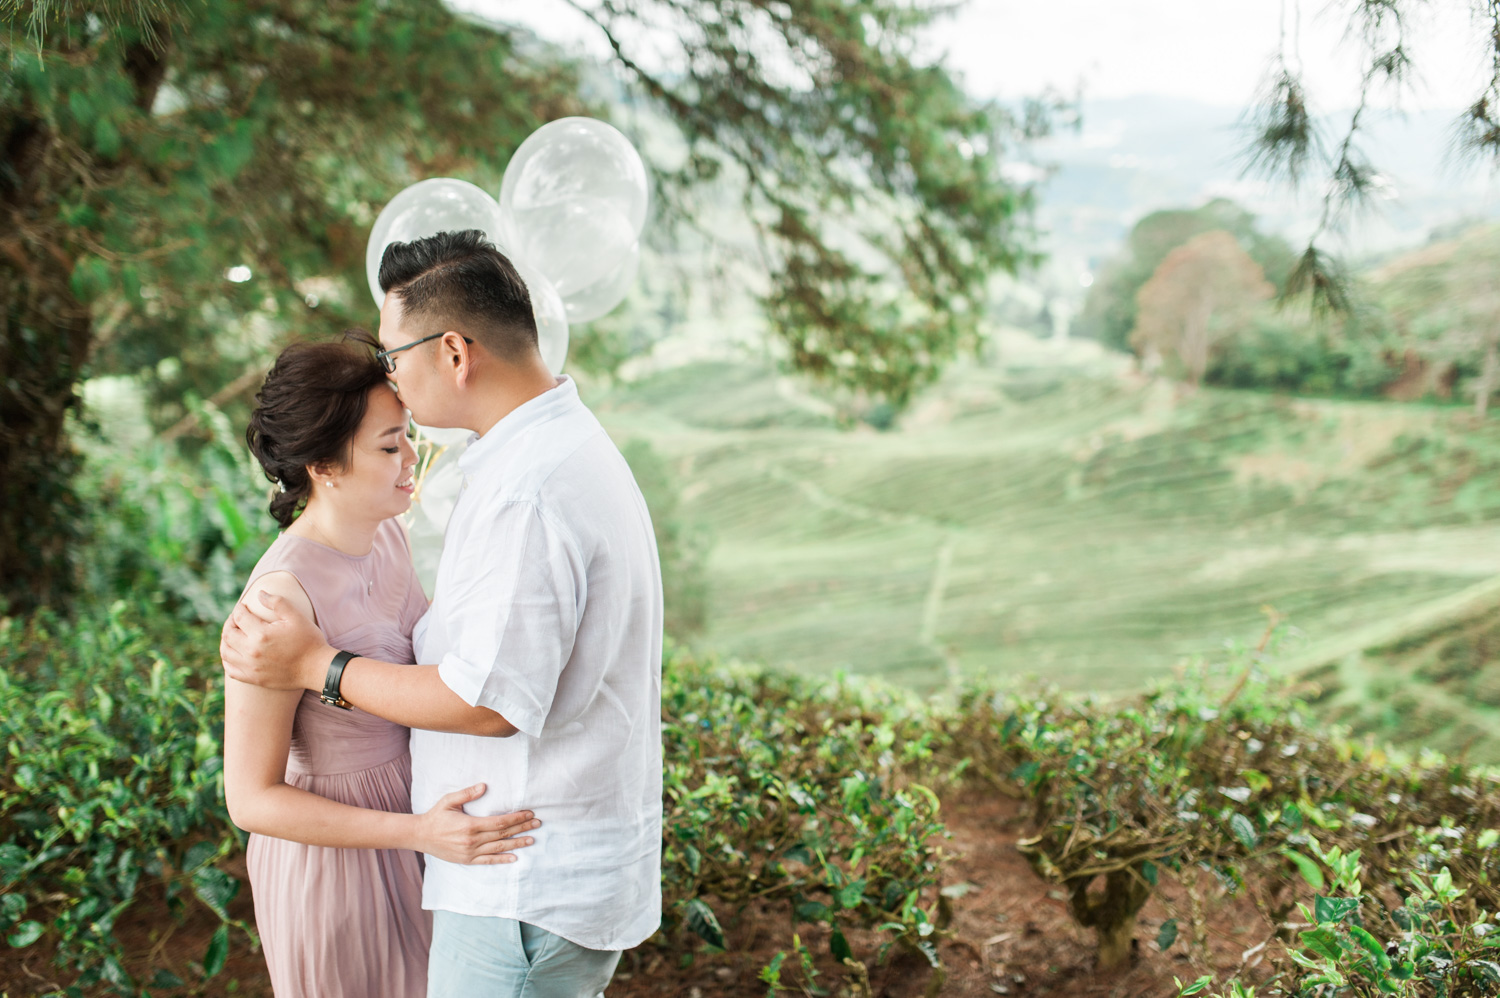 camerons-highland-engagement-pre-wedding-kuala-lumpur-singapore-photographer-lifestyle-pre-wedding